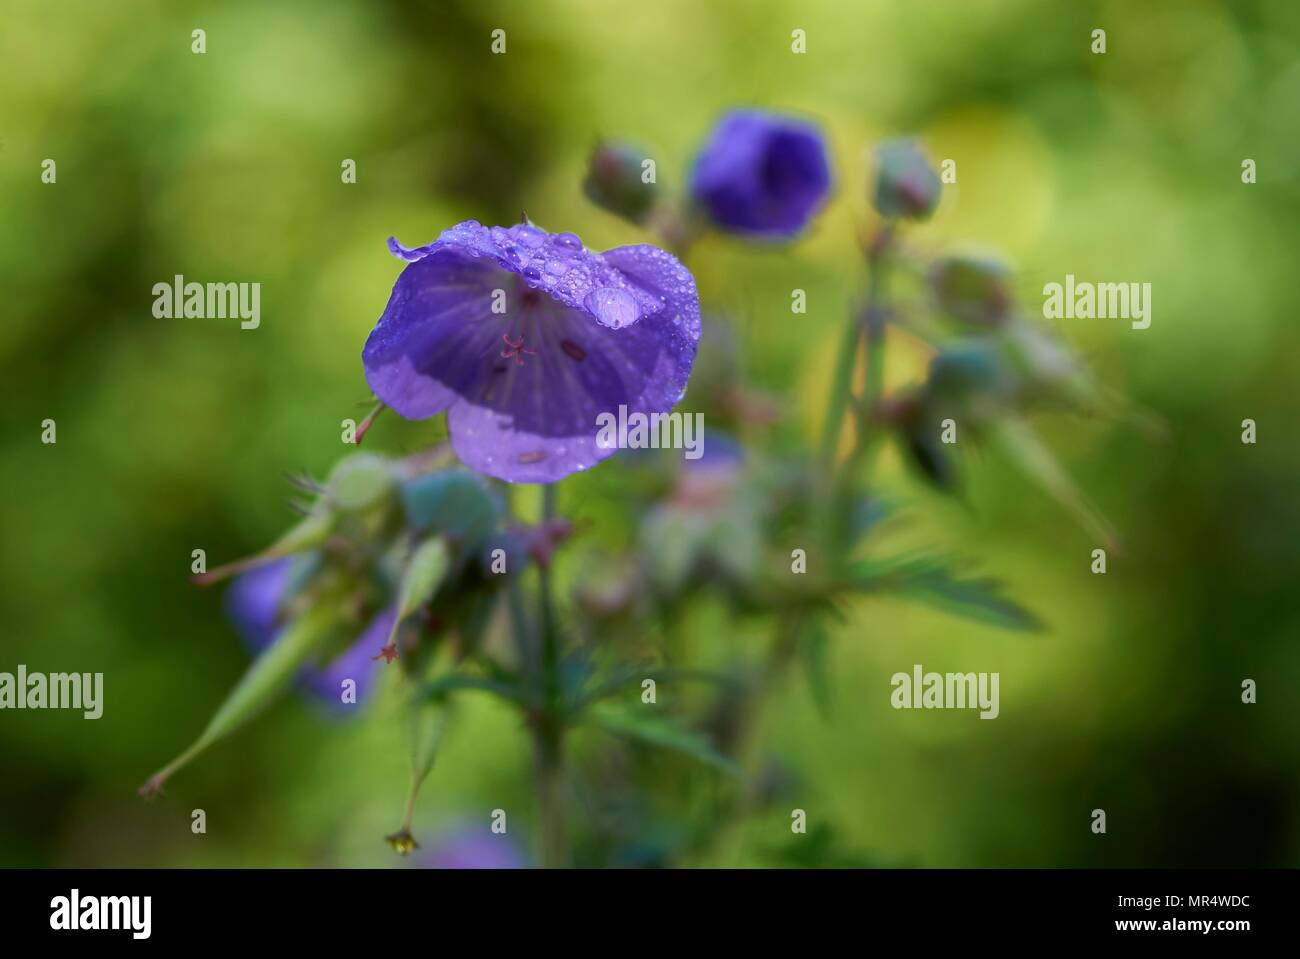 meadow crane's-bill, Geranium pratense, on the banks of the River Severn in Shropshire, England, UK - Stock Image